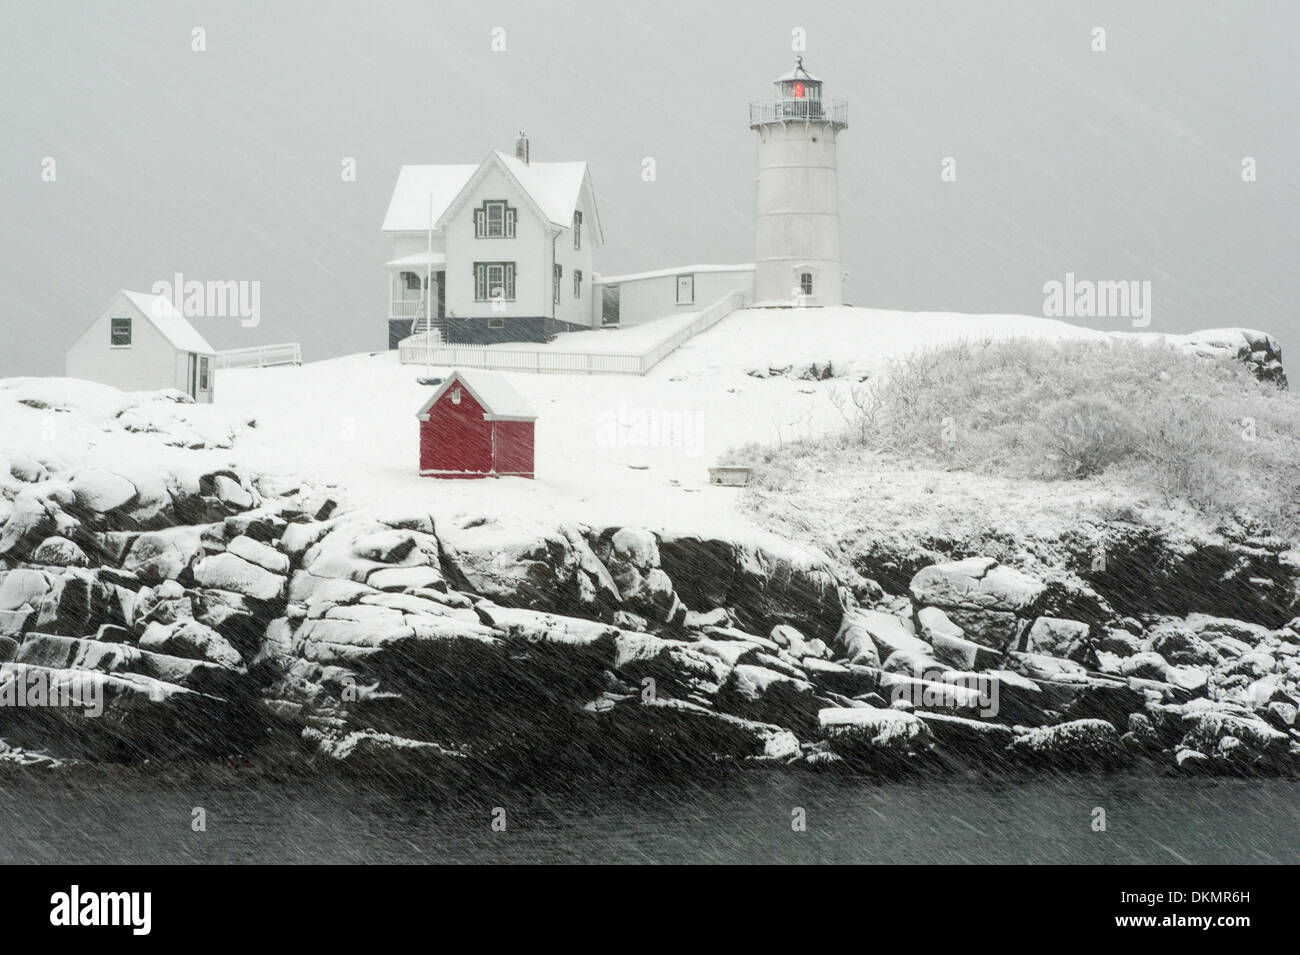 Nubble (Cape Neddick) lighthouse flashes its red light during snowstorm in Maine. - Stock Image